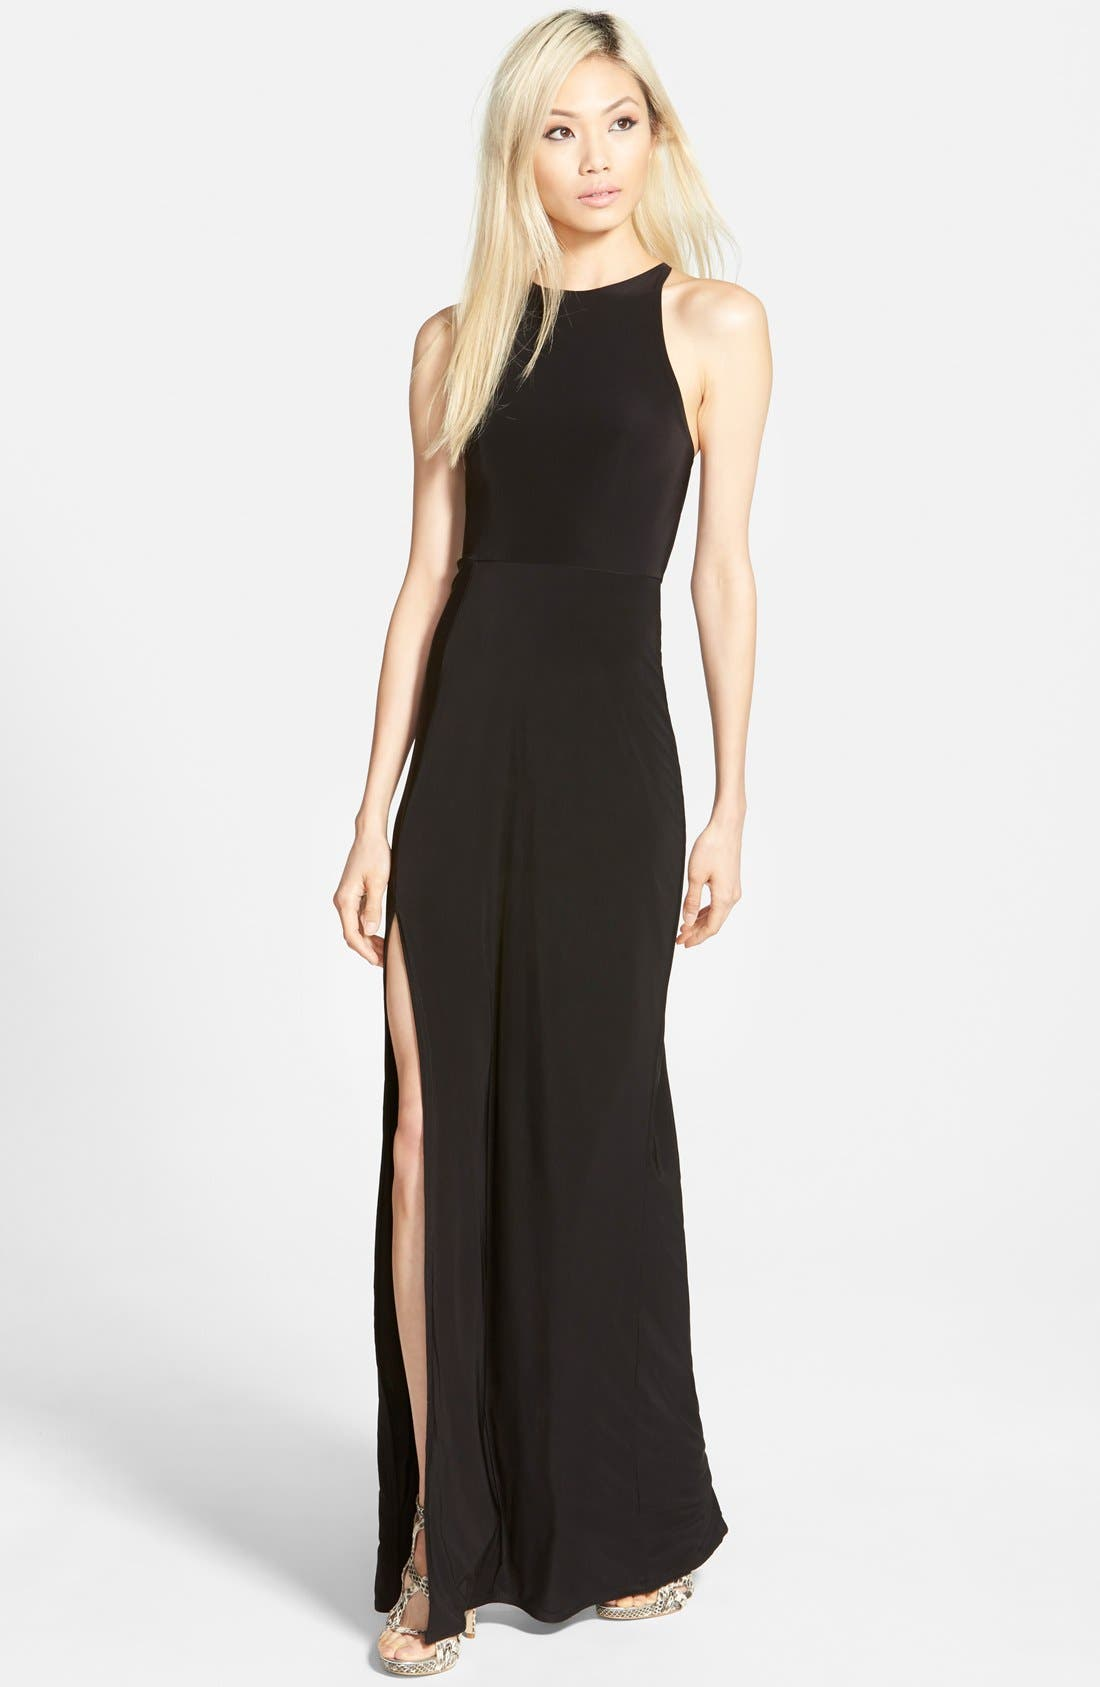 Main Image - Missguided 'Nora' High Neck Maxi Dress